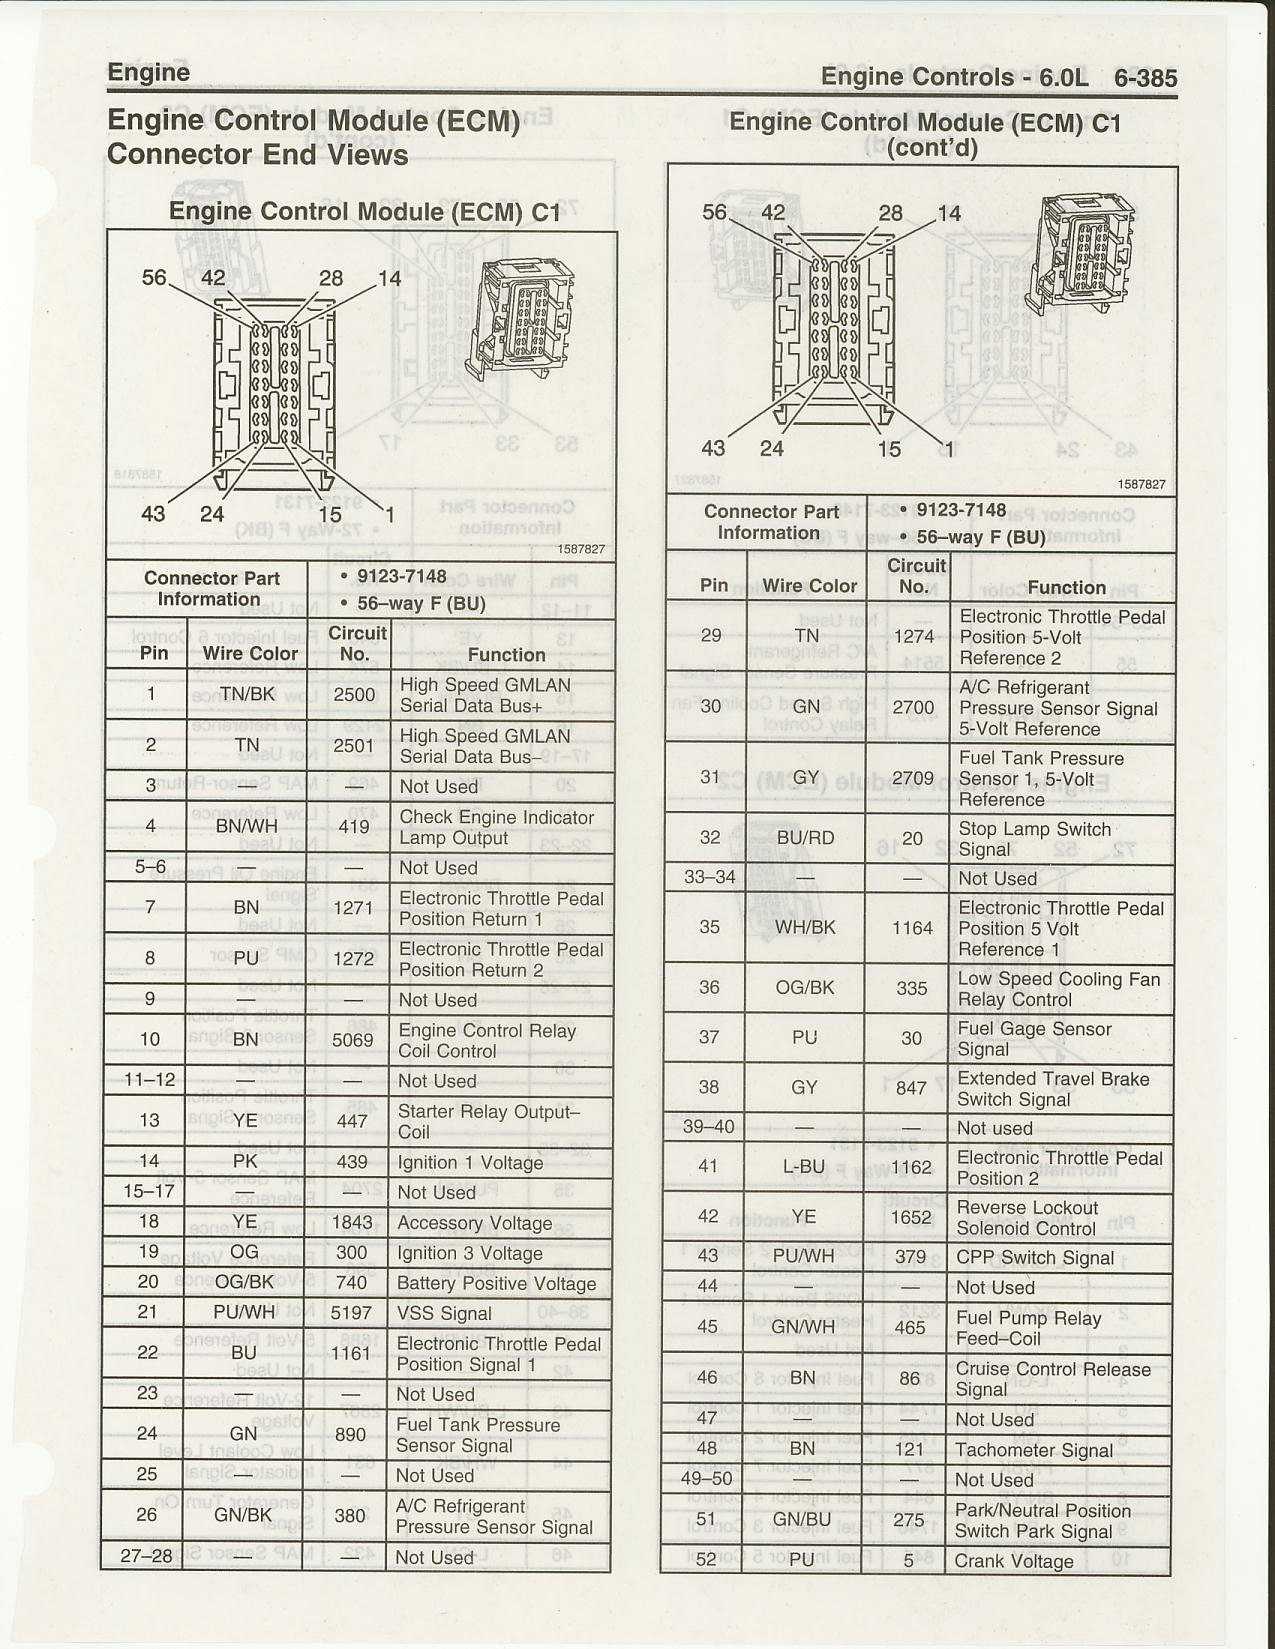 Wiring Cts Diagram Cadillac 2005 Ecm Conrctor Schematics 2003 Headlight Harness Pinouts And Diagrams Page 4 Ls1tech Camaro Firebird Rh Com